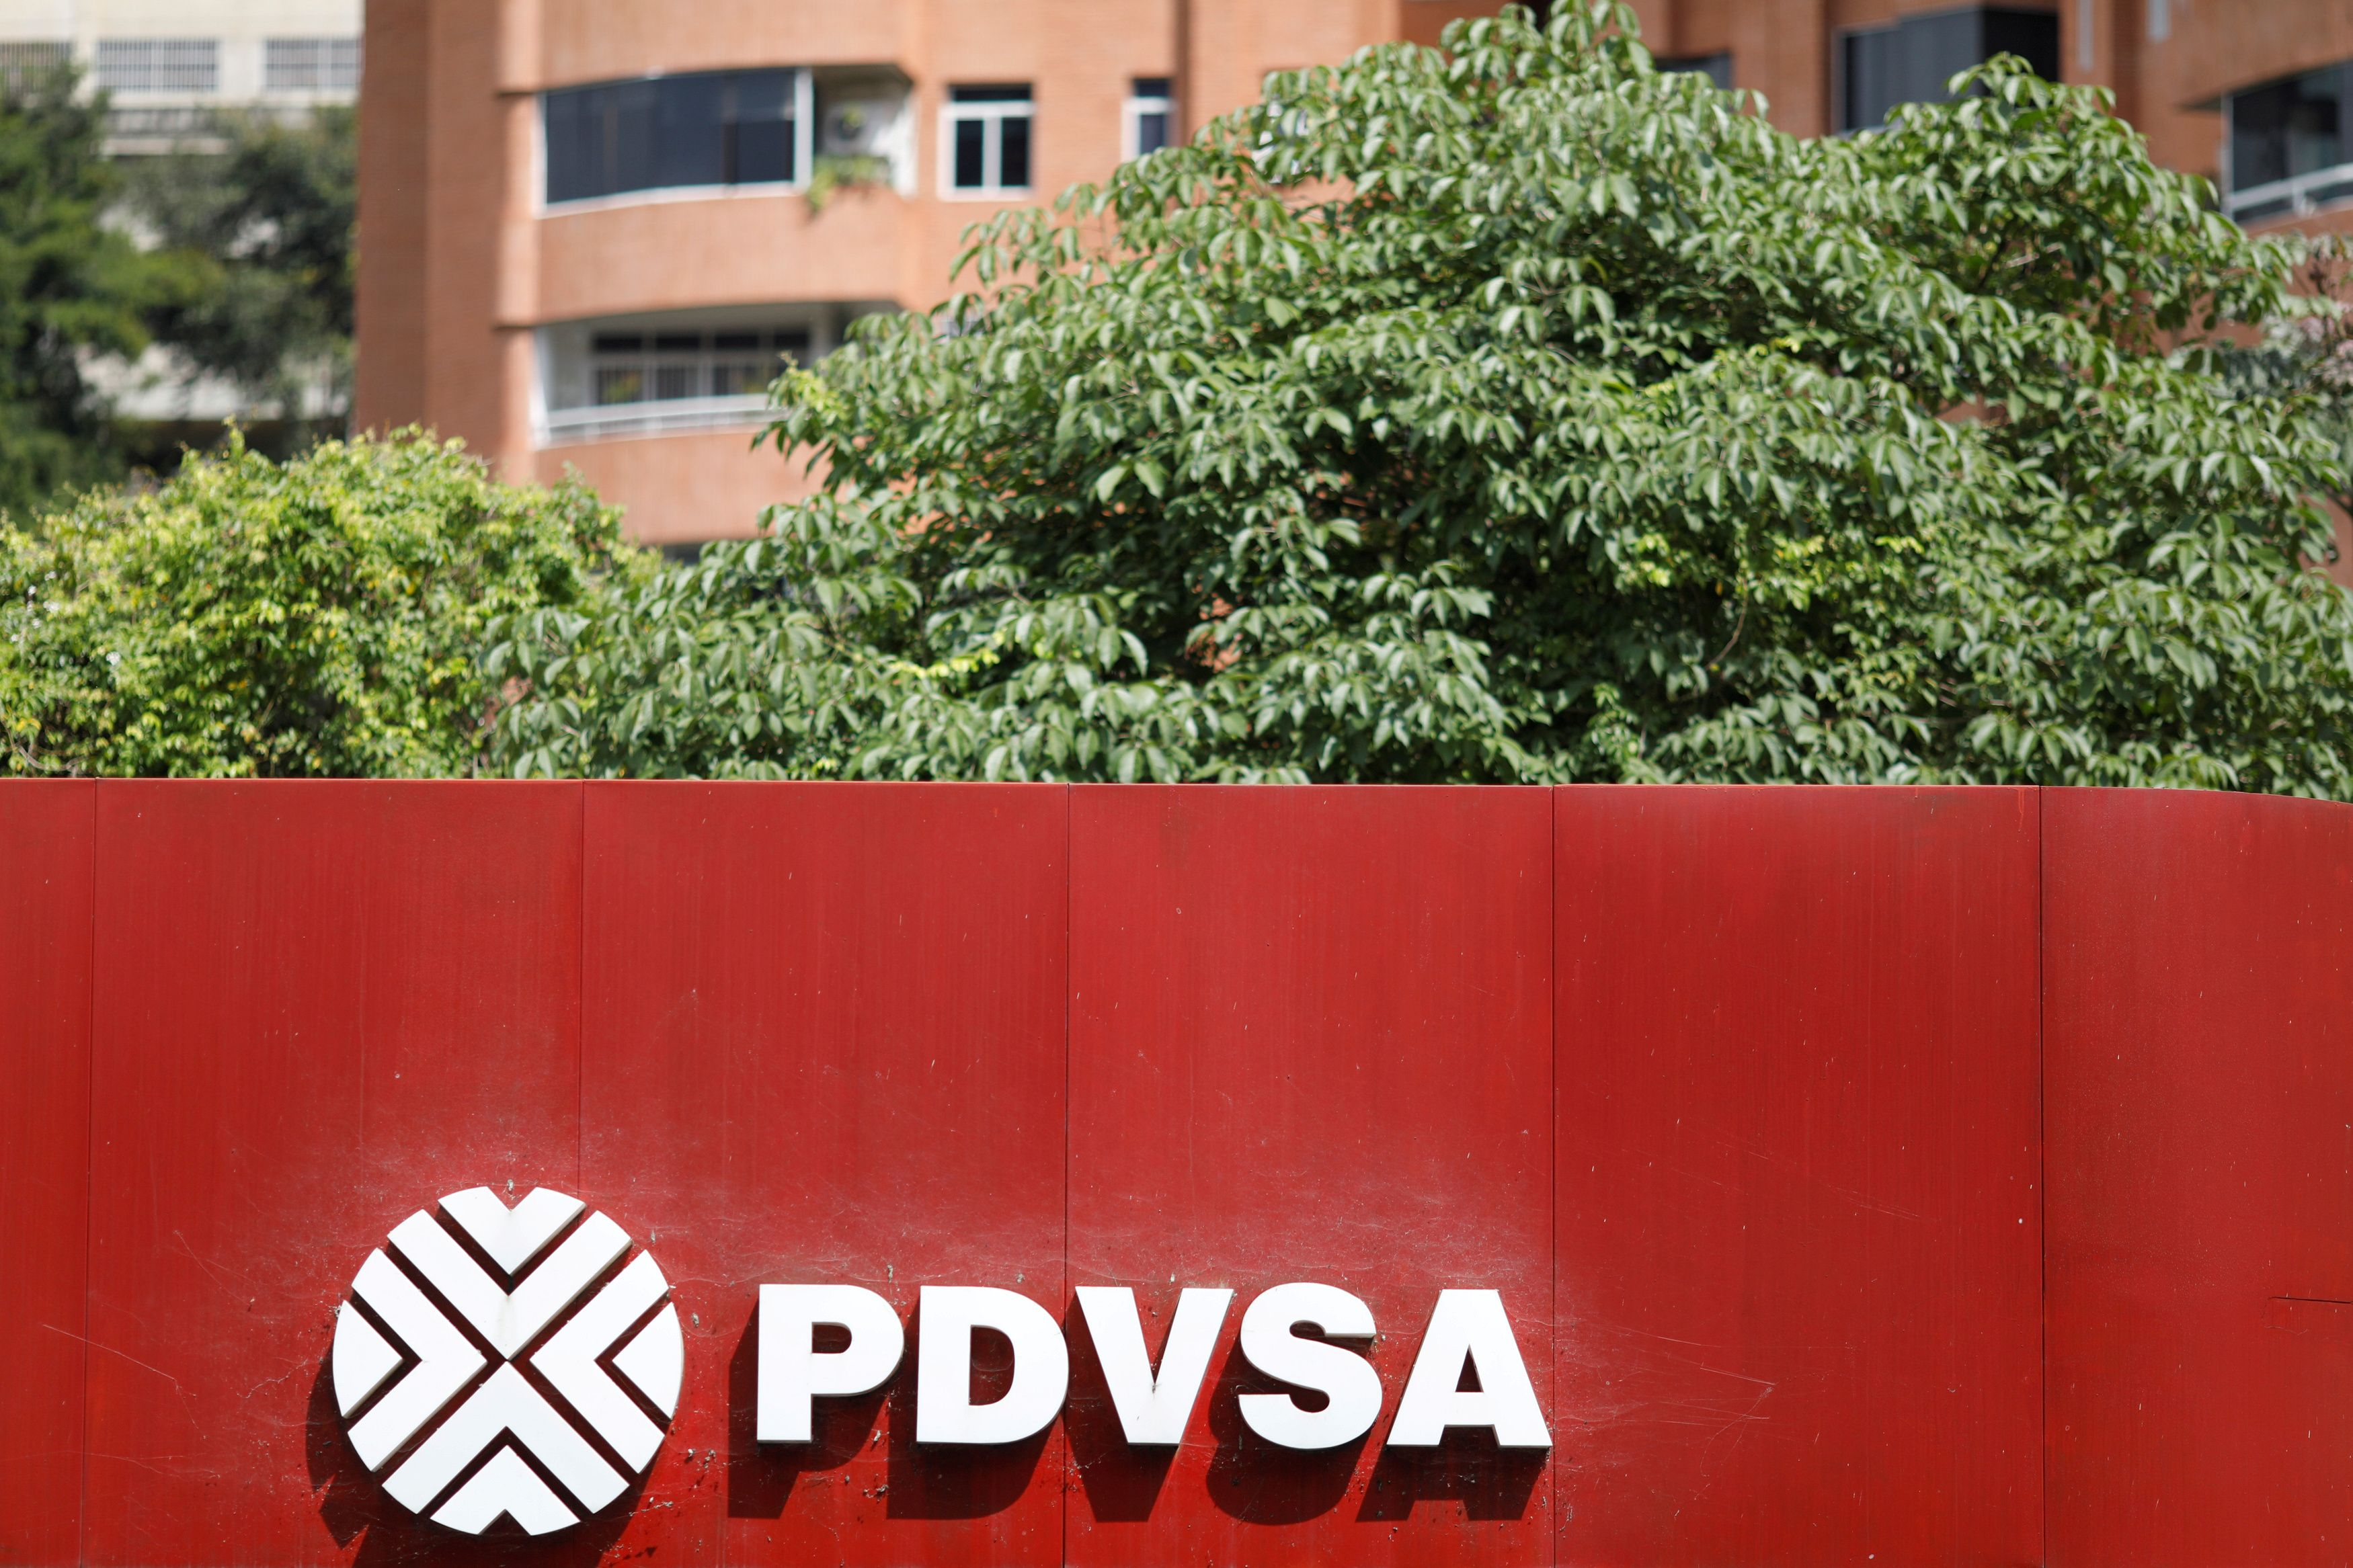 The corporate logo of the state oil company PDVSA is seen at a gas station in Caracas, Venezuela November 16, 2017. REUTERS/Marco Bello/File Photo